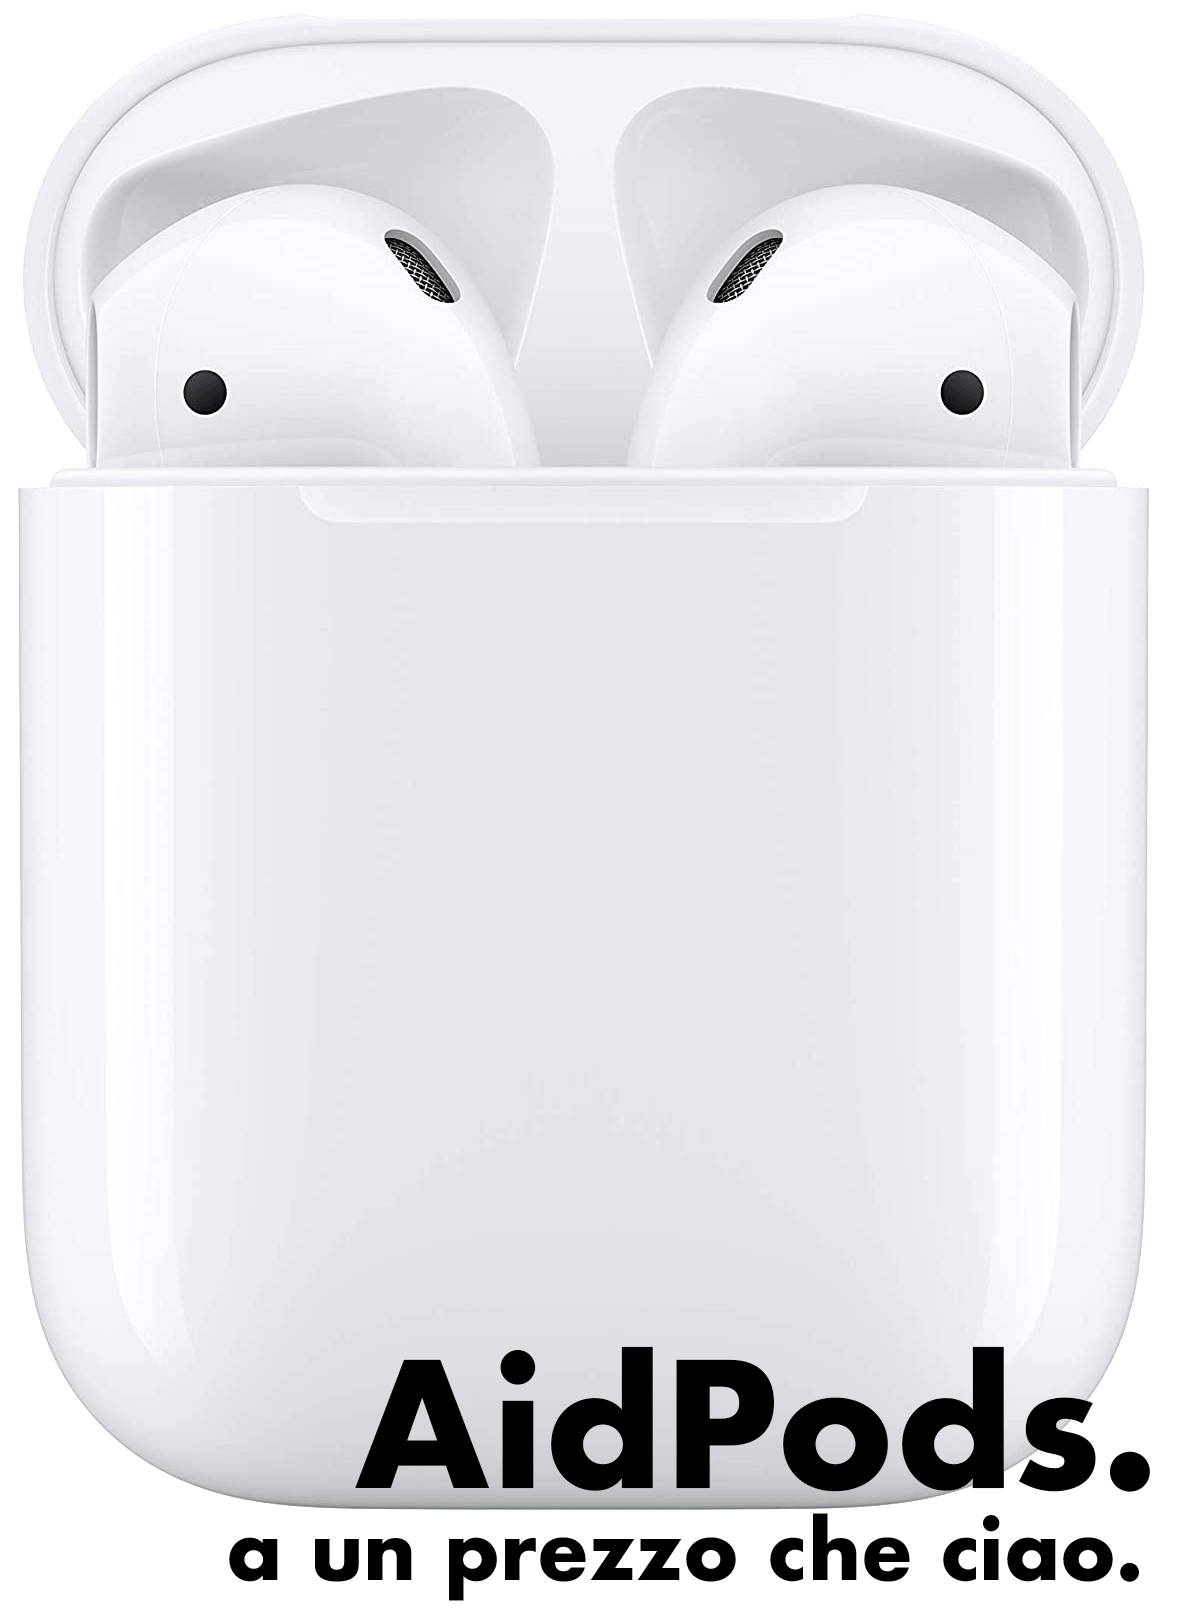 AirPods - banner